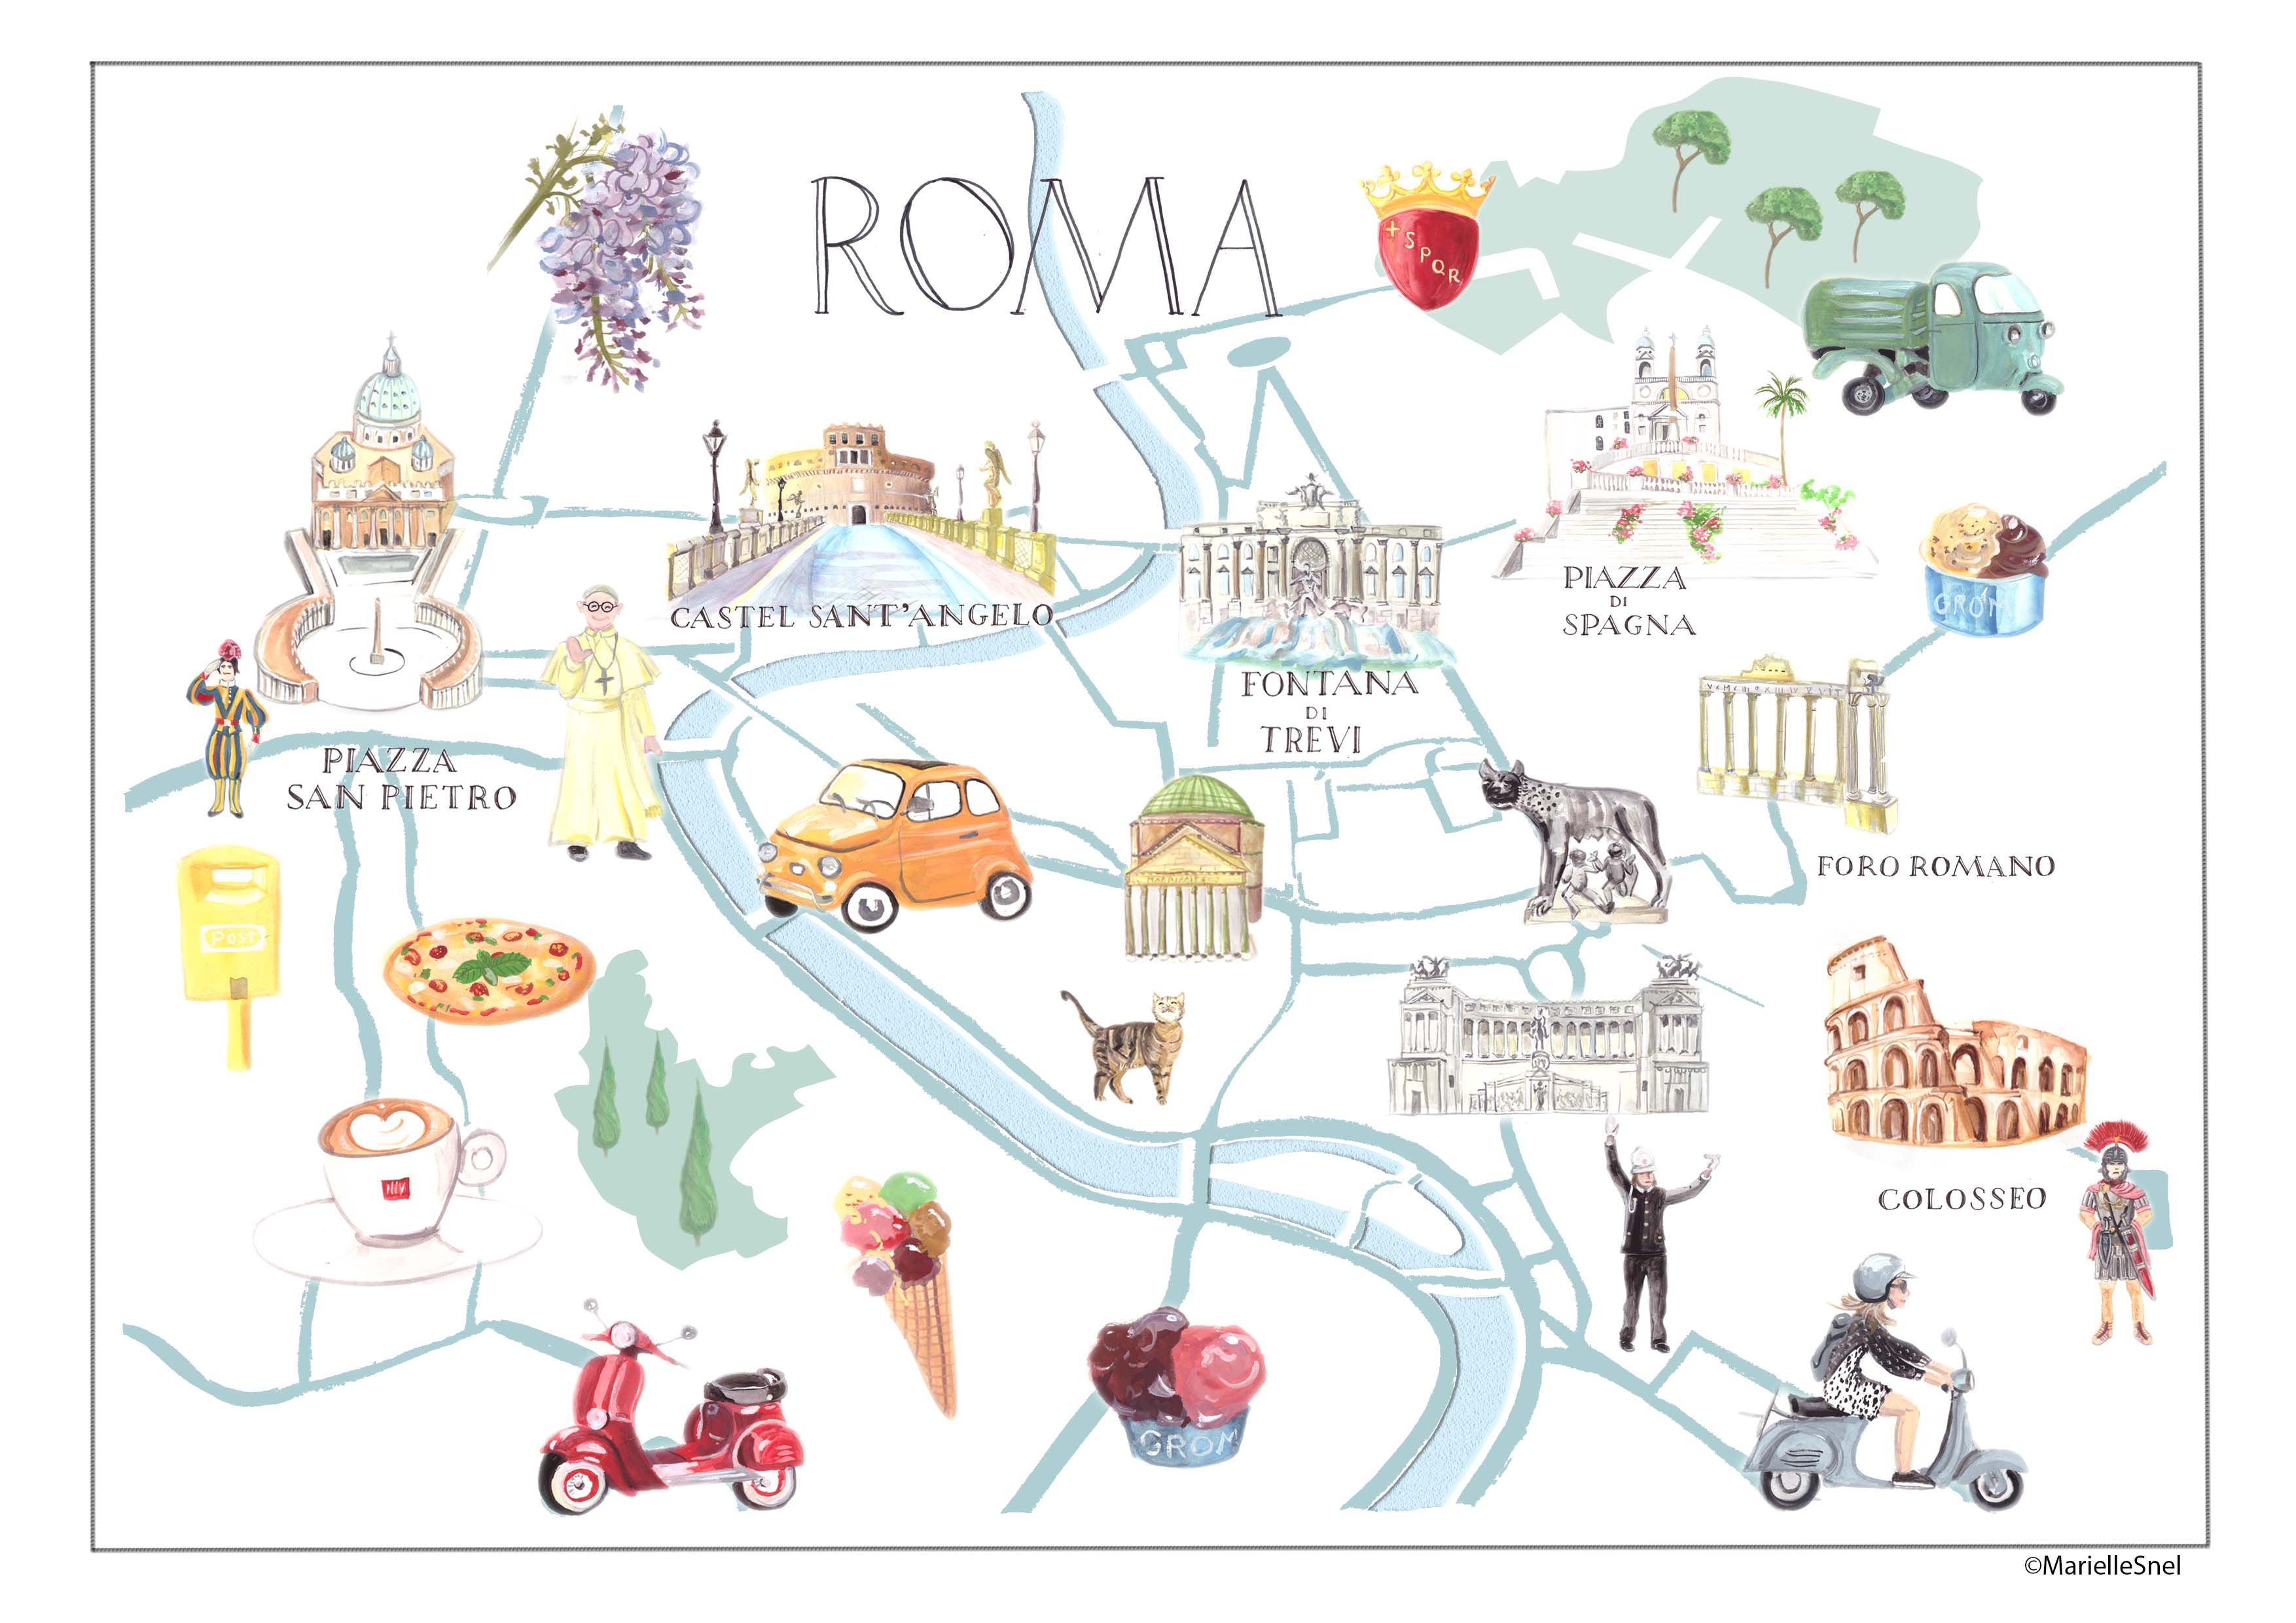 The city of Rome, Italy. Ciao Roma! illustrated map for Tiramisushi ...